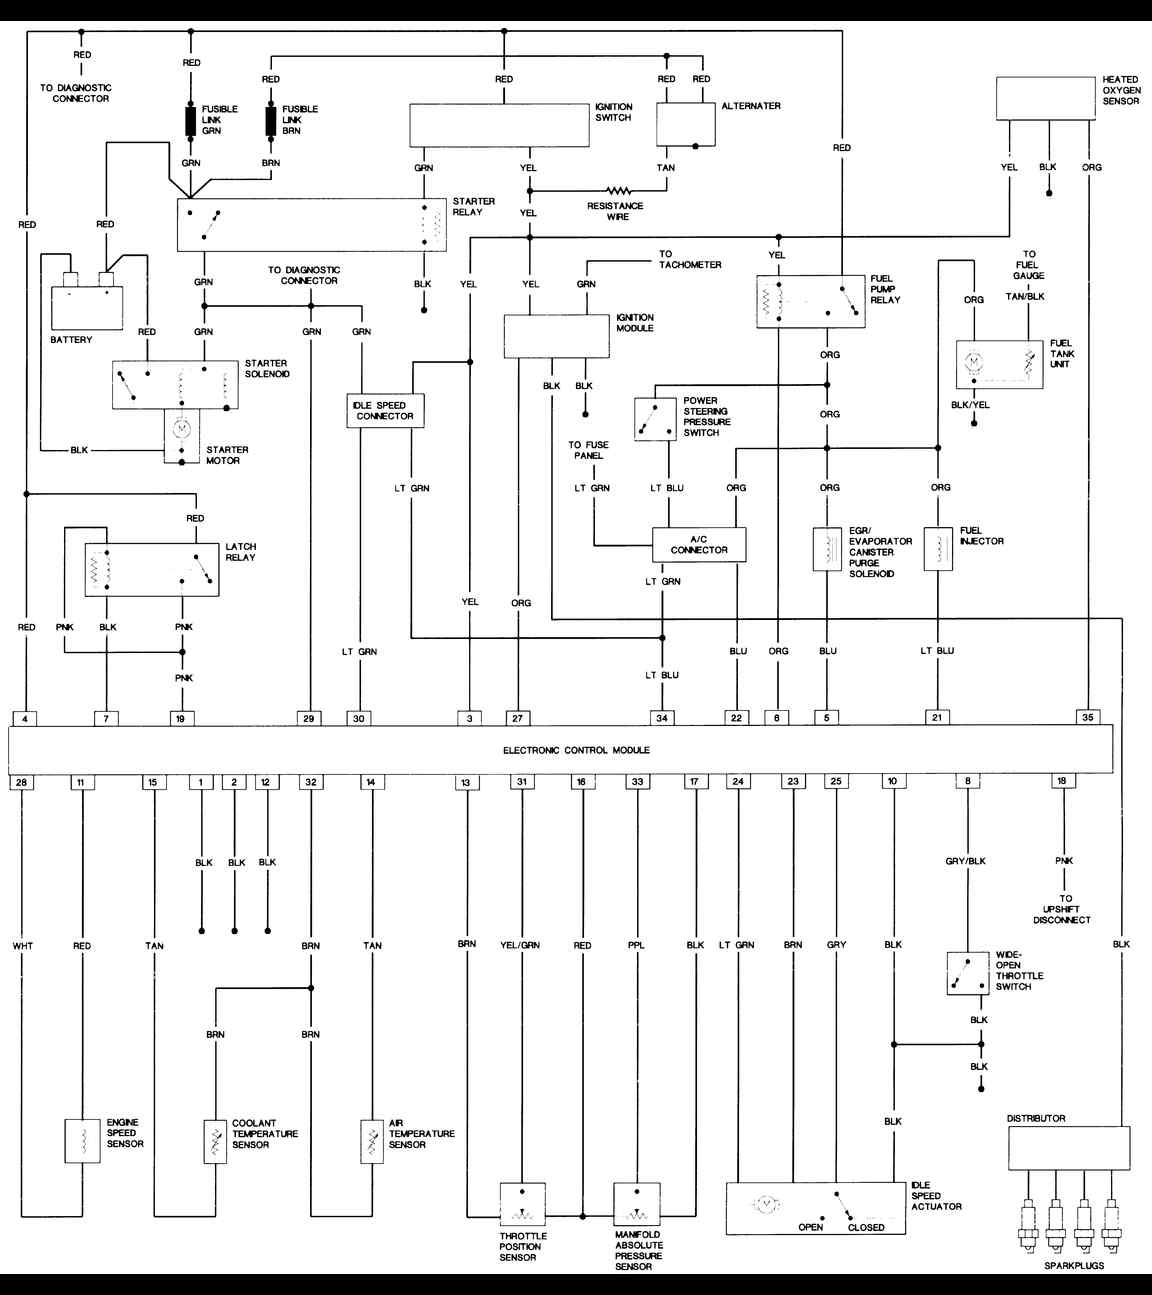 DIAGRAM] Wiring Diagram For 1987 Jeep Wrangler FULL Version HD Quality Jeep  Wrangler - STOVEWIRINGPDF.LECOCHONDOR.FRWiring And Fuse Database